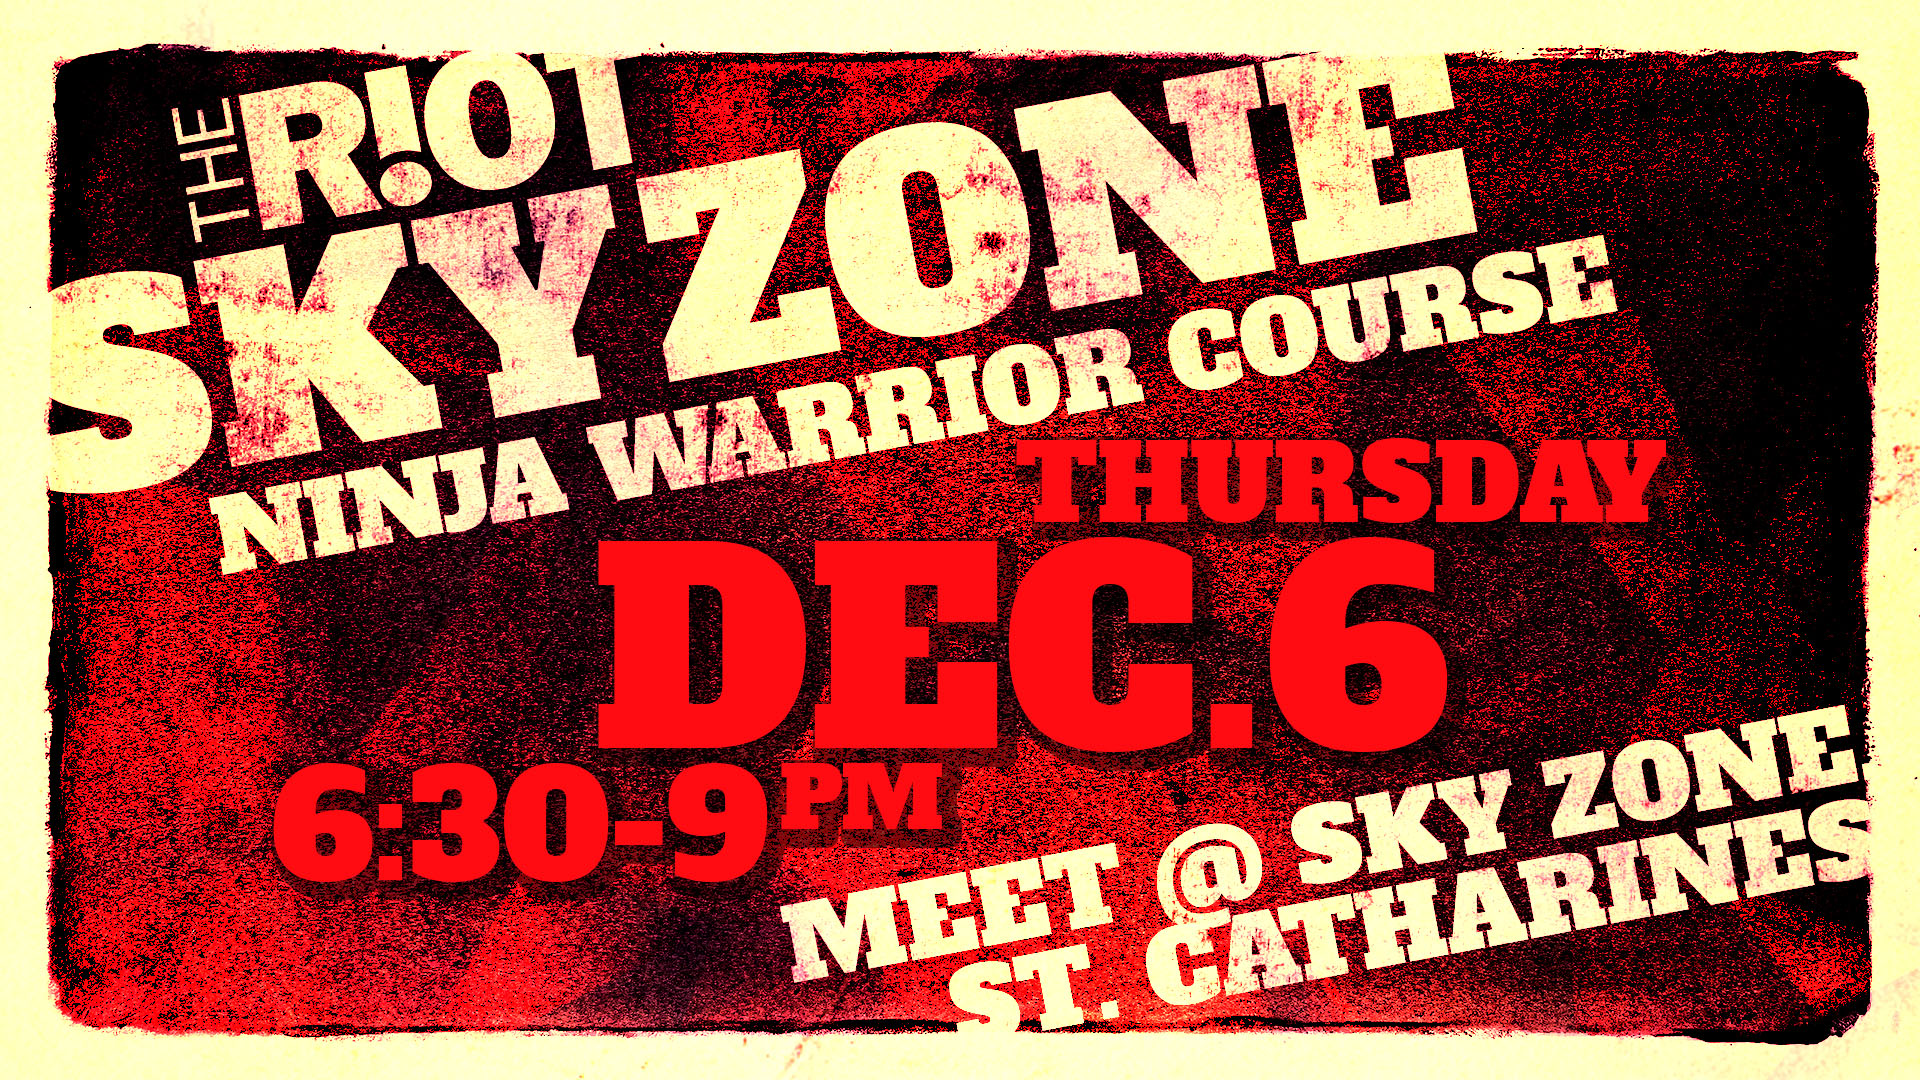 photograph about Printable Sky Zone Waiver titled Southridge Regional Church R!OT Skyzone Ninja System